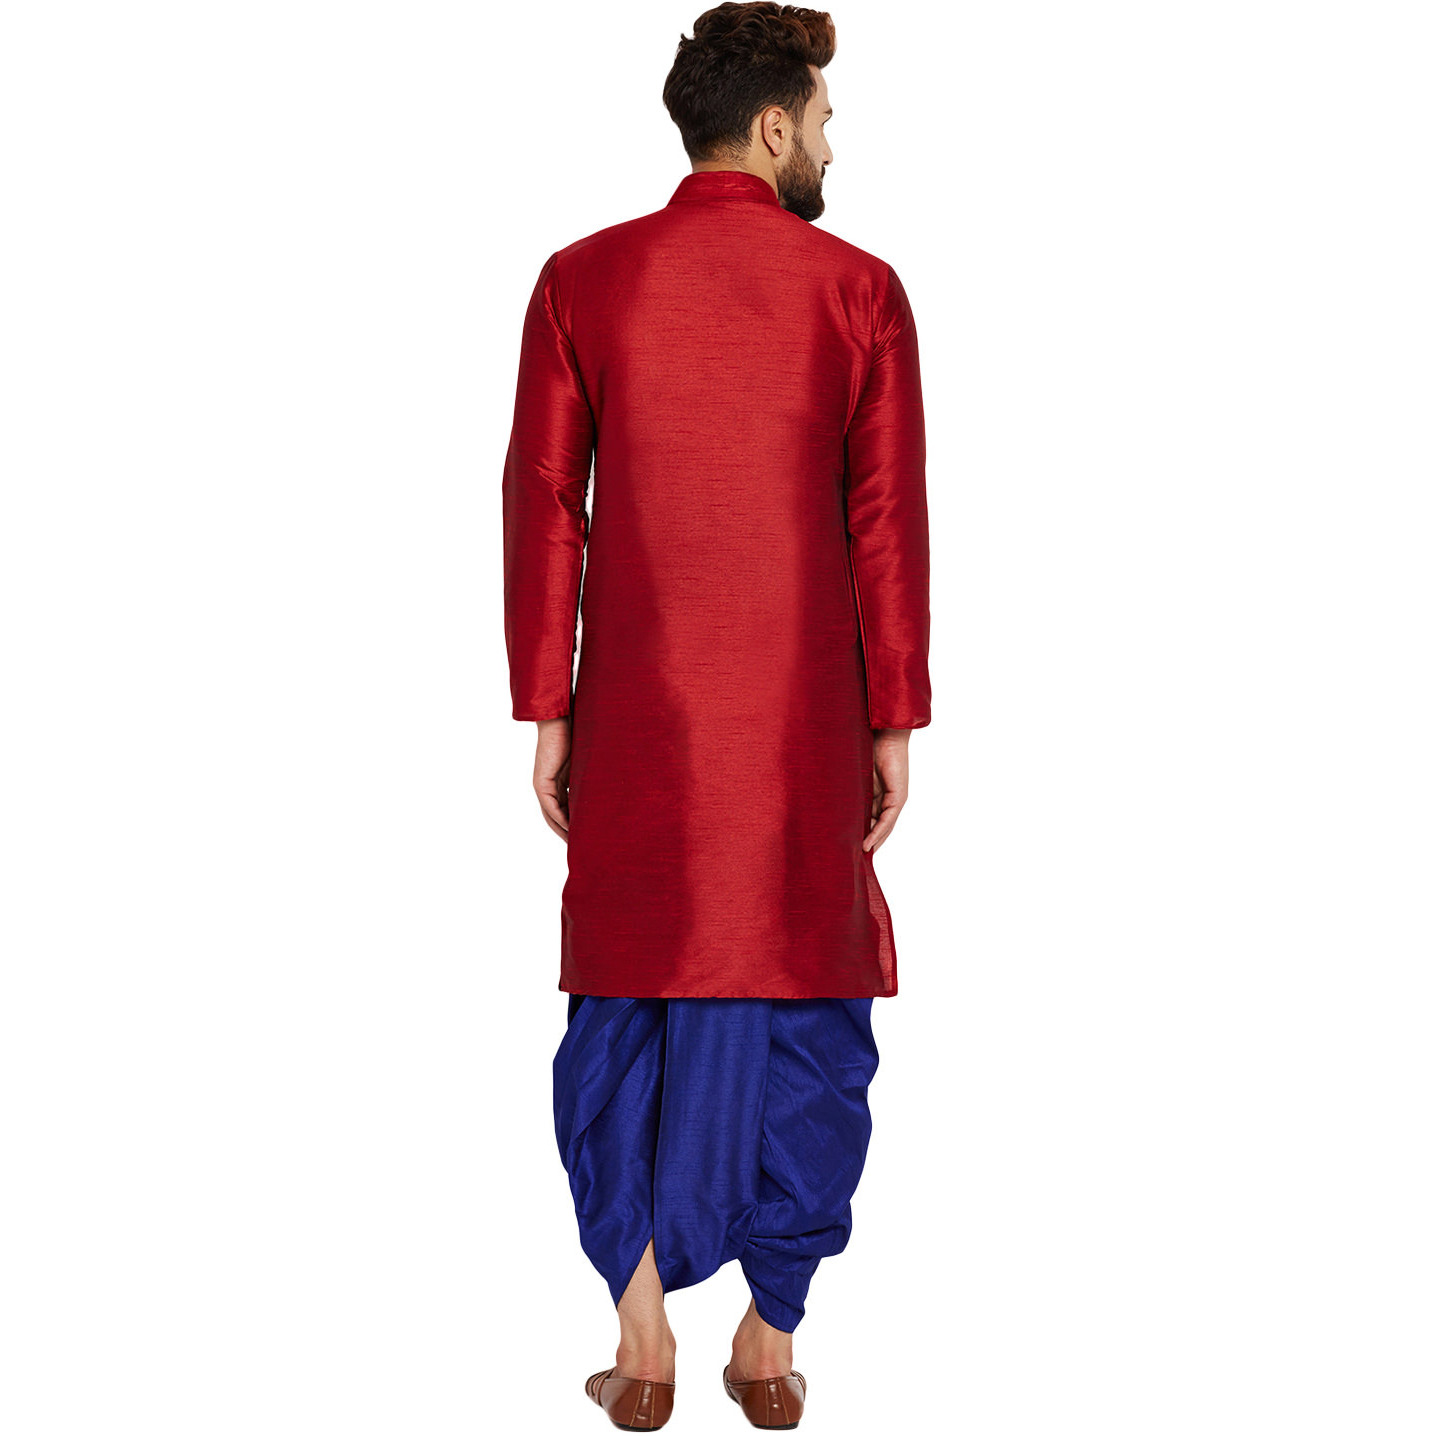 Sojanya (Since 1958)B Men's Traditional Ethnic Wear Dupion Silk Maroon and Royal BlueThread embroidery Dhoti Kurta Set Regular Fit